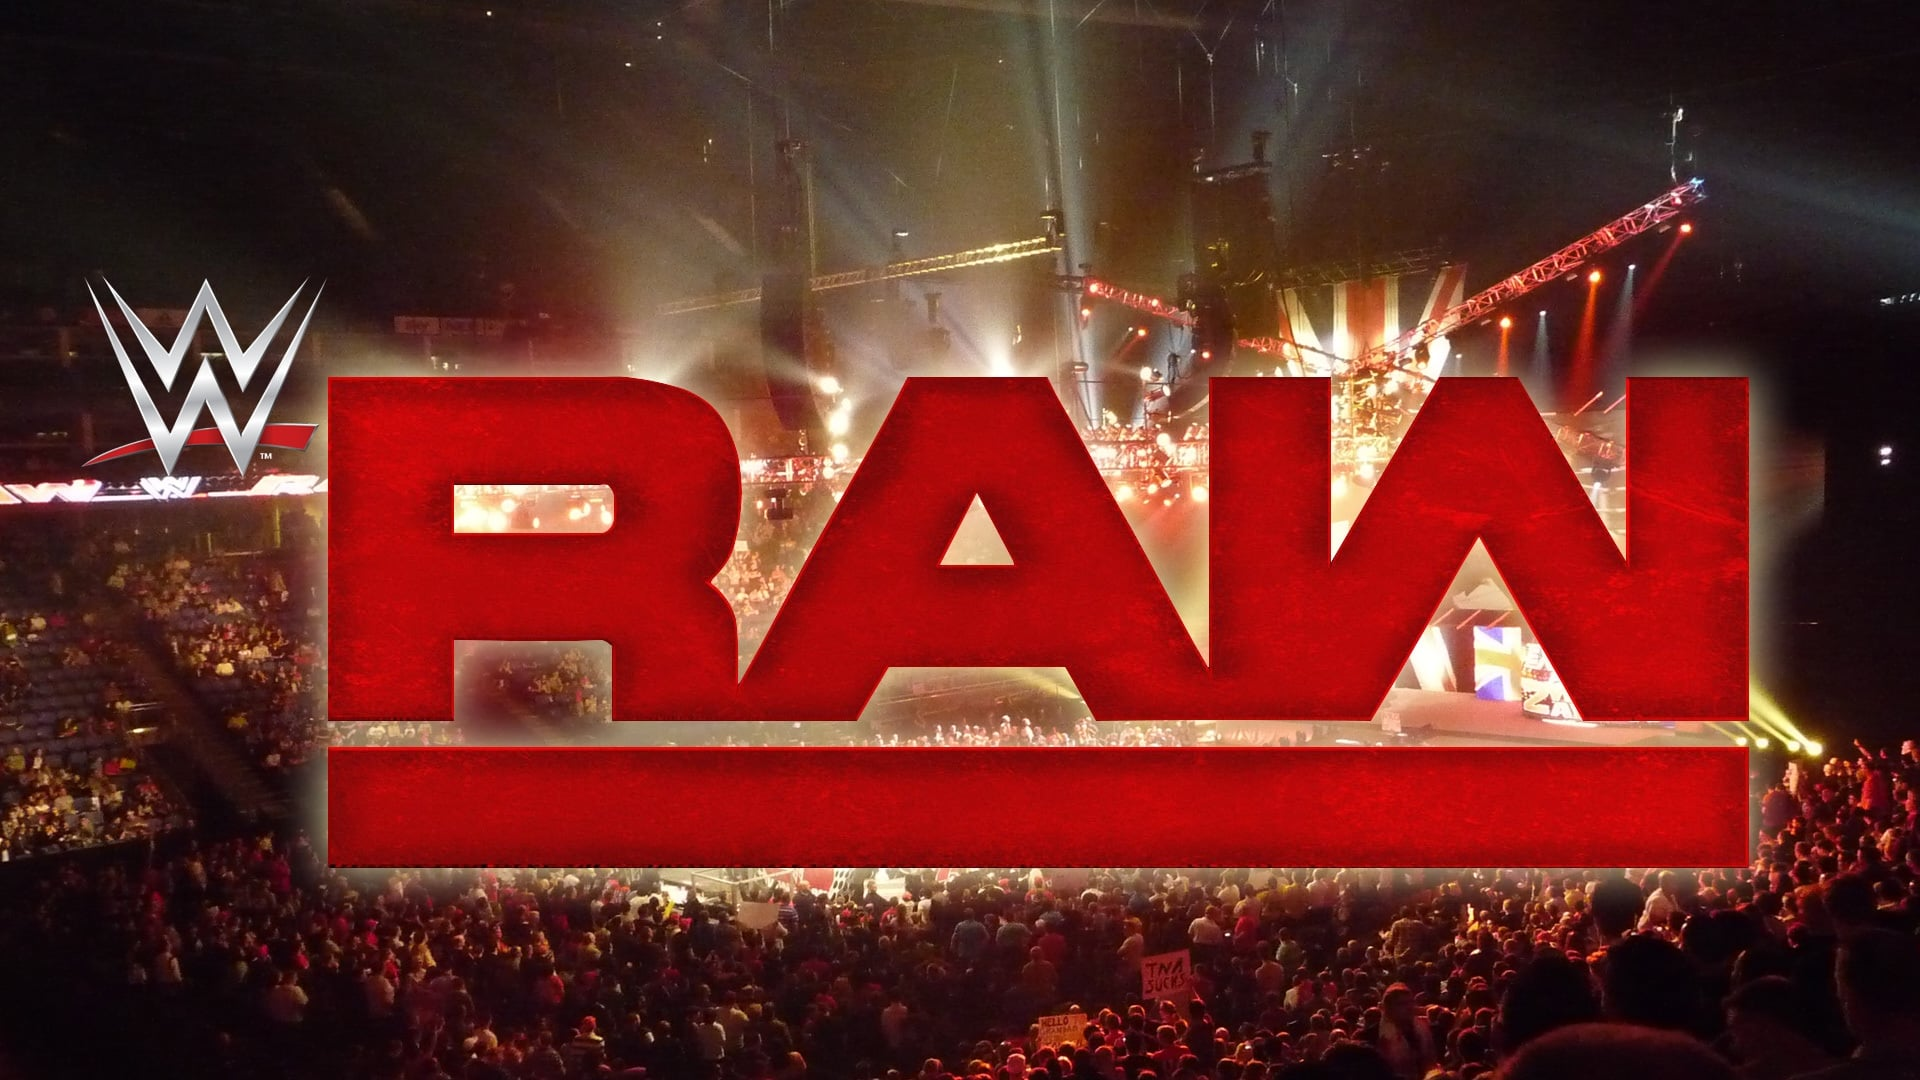 WWE Raw - Season 7 Episode 43 : RAW is WAR 335